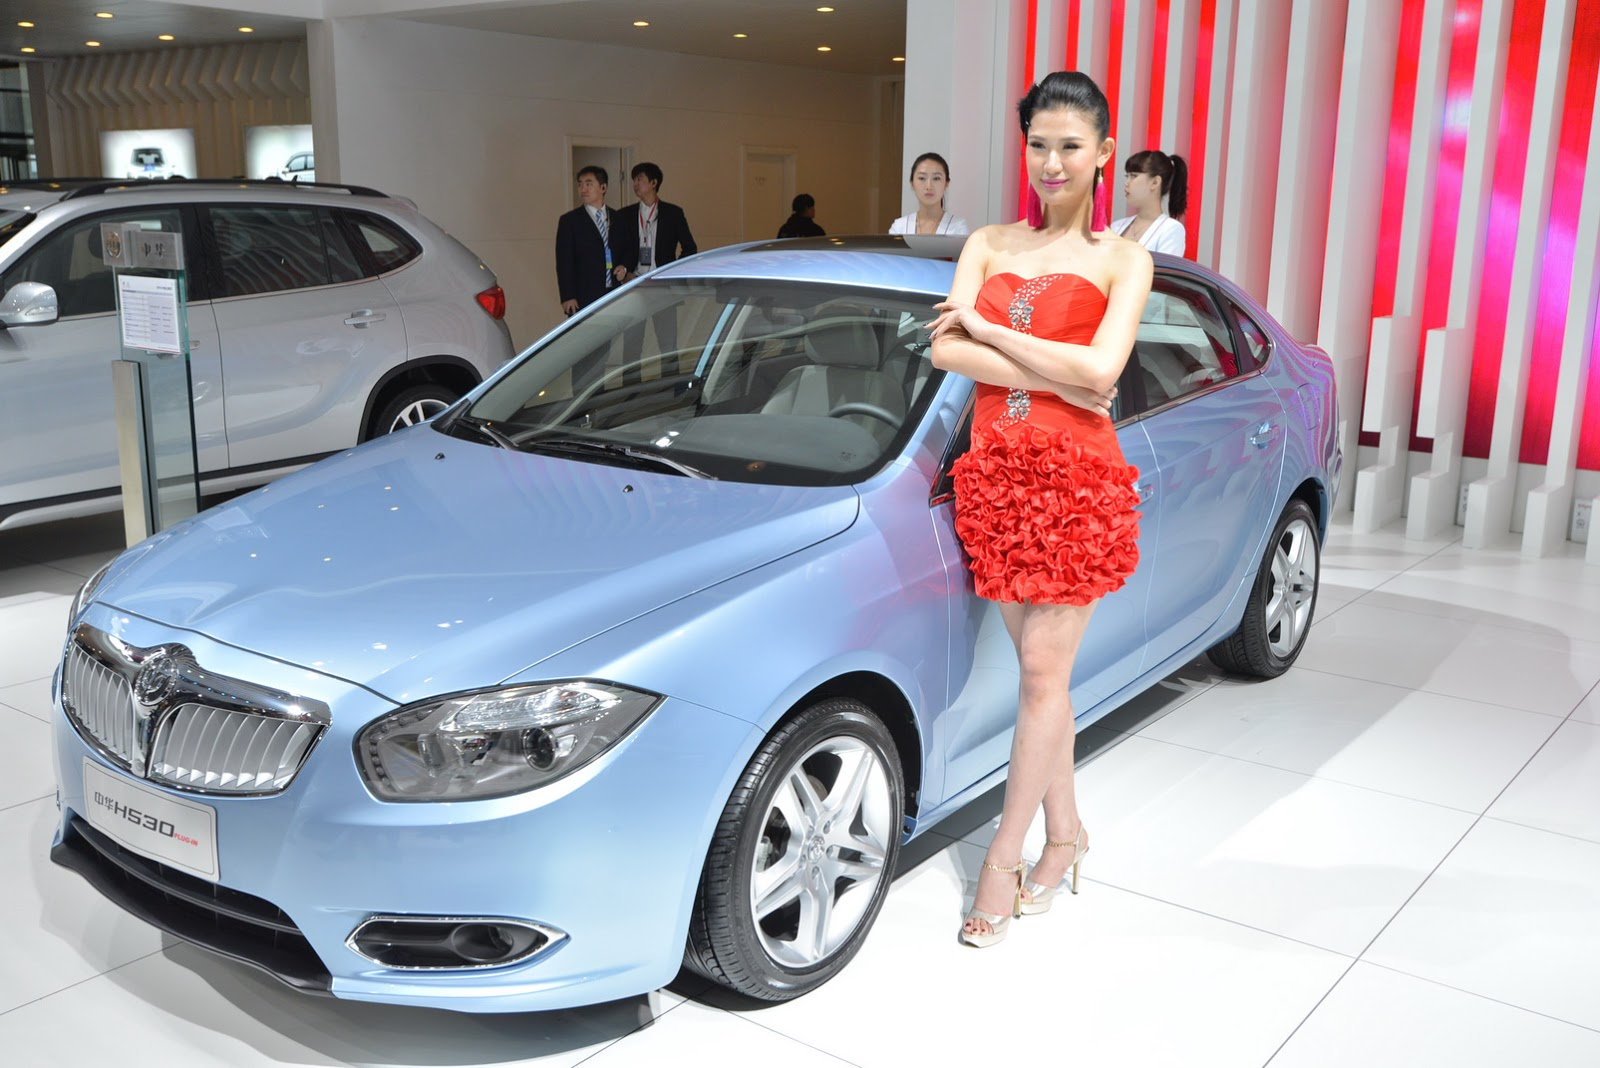 After banning sexy models shanghai auto show now bans - Auto motor show ...